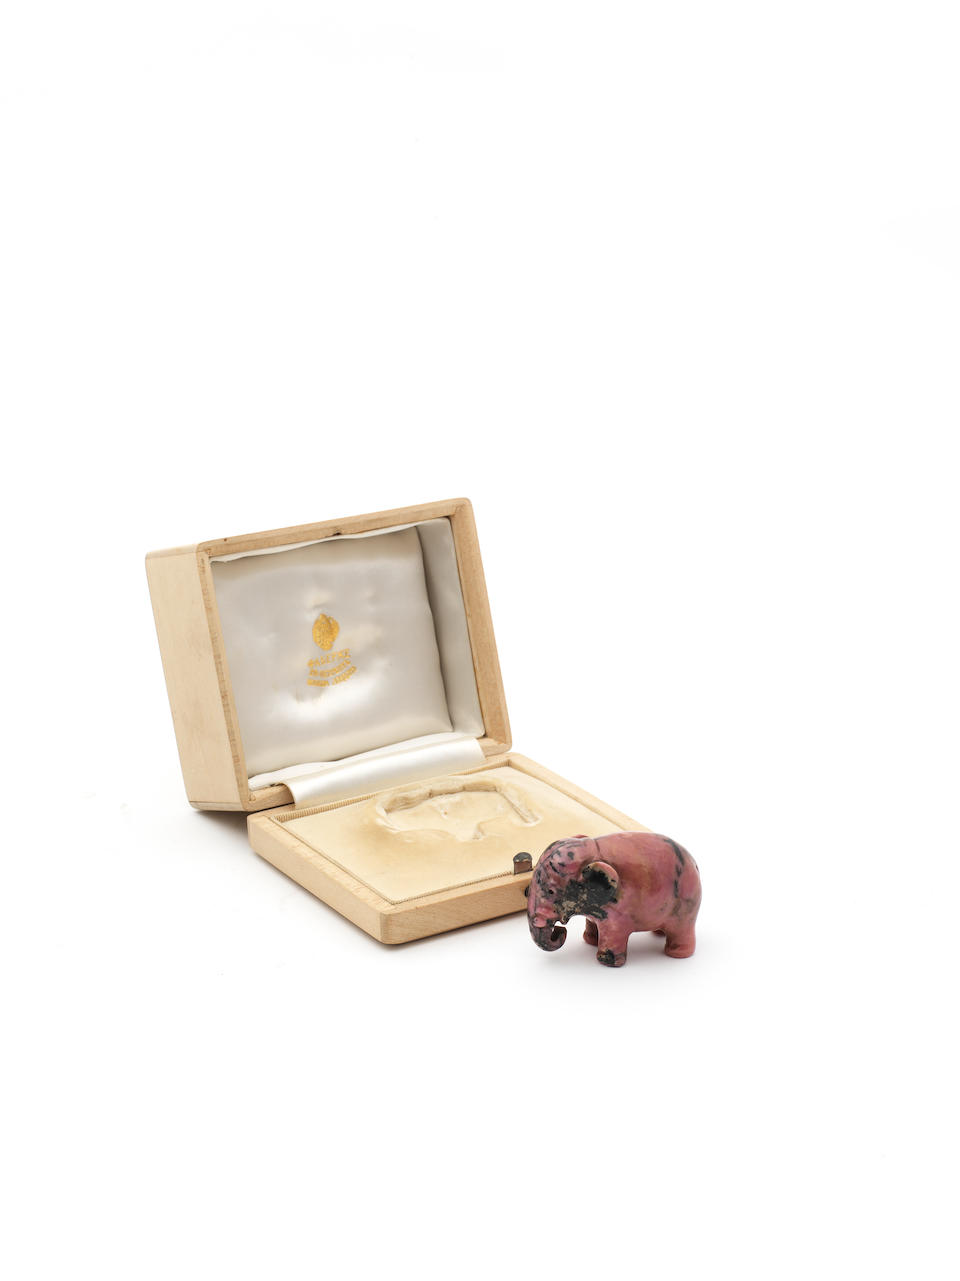 A Rhodonite figure of an elephantattributed to Fabergé, c. 1900